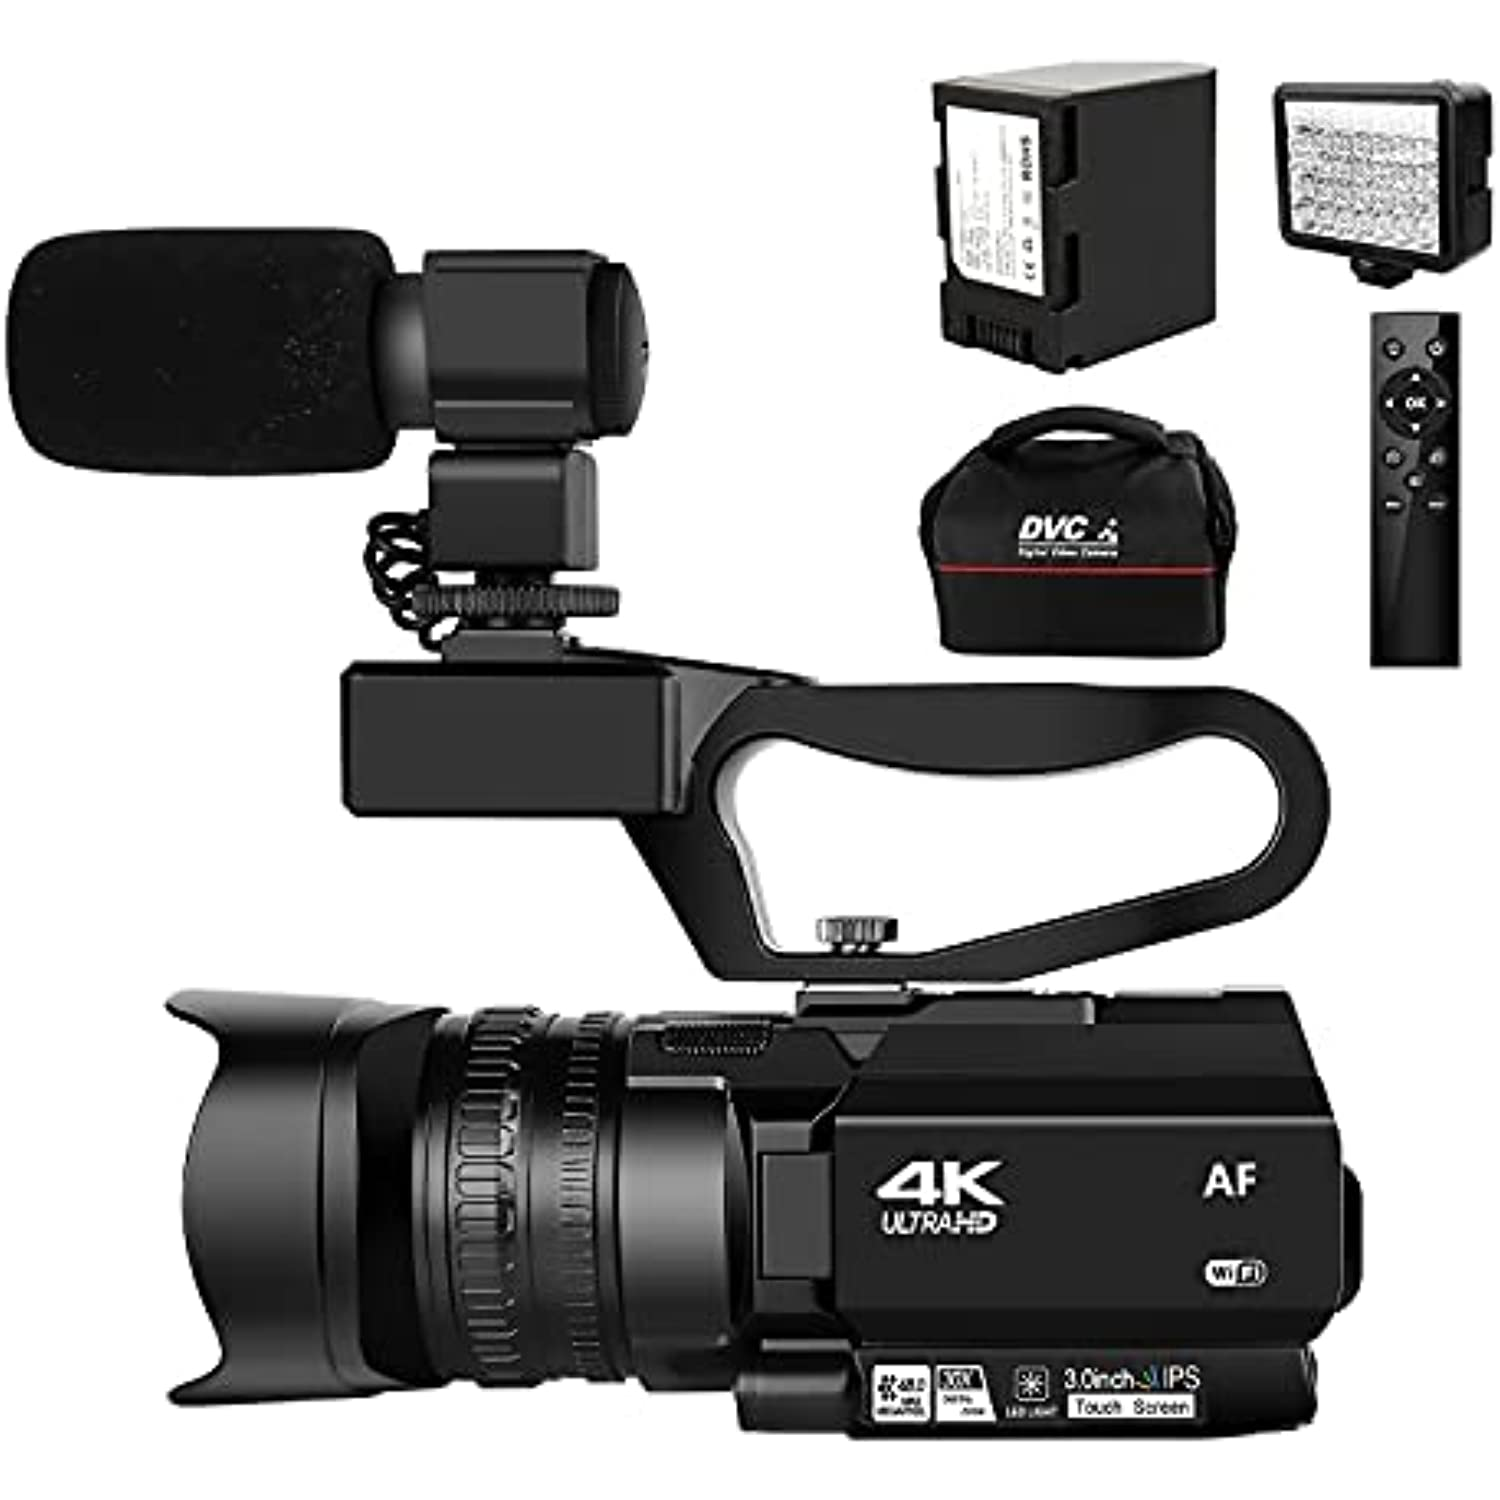 4K HD Auto Focus Video Camera 48MP 60FPS 30X Digital Zoom Camera for YouTube with LED Fill Light Camcorder 4500mAh Battery, Remote Control, Handheld, Microphone and 64G SD Card SD Card